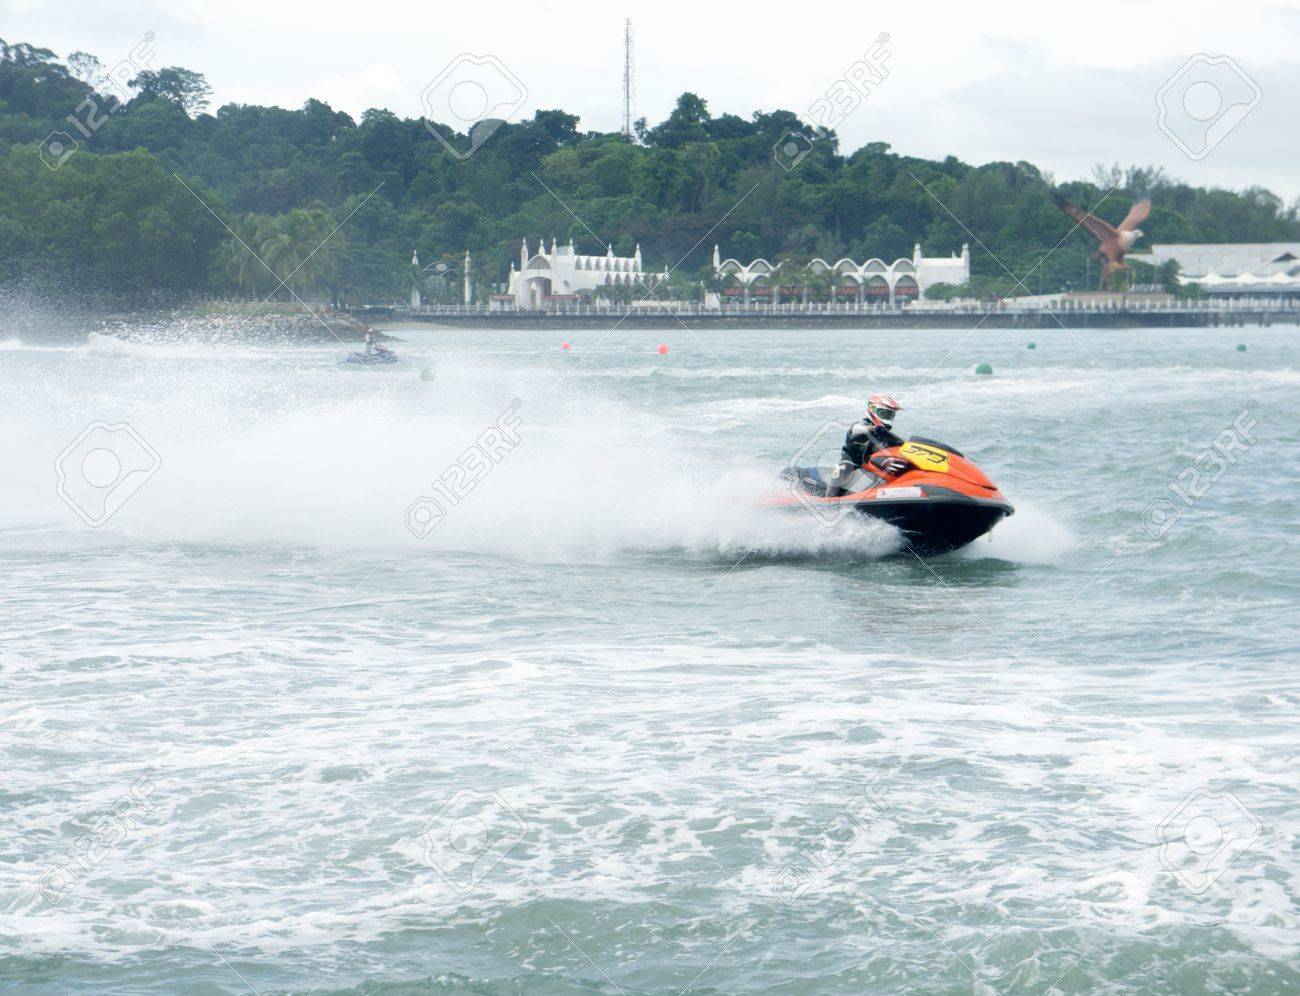 LANGKAWI, MALAYSIA - APRIL 13 : Unidentified rider pumps up his machine during Langkawi International Formula Jet Ski Super Series, April 13, 2012 in Langkawi, Malaysia. Stock Photo - 13154515